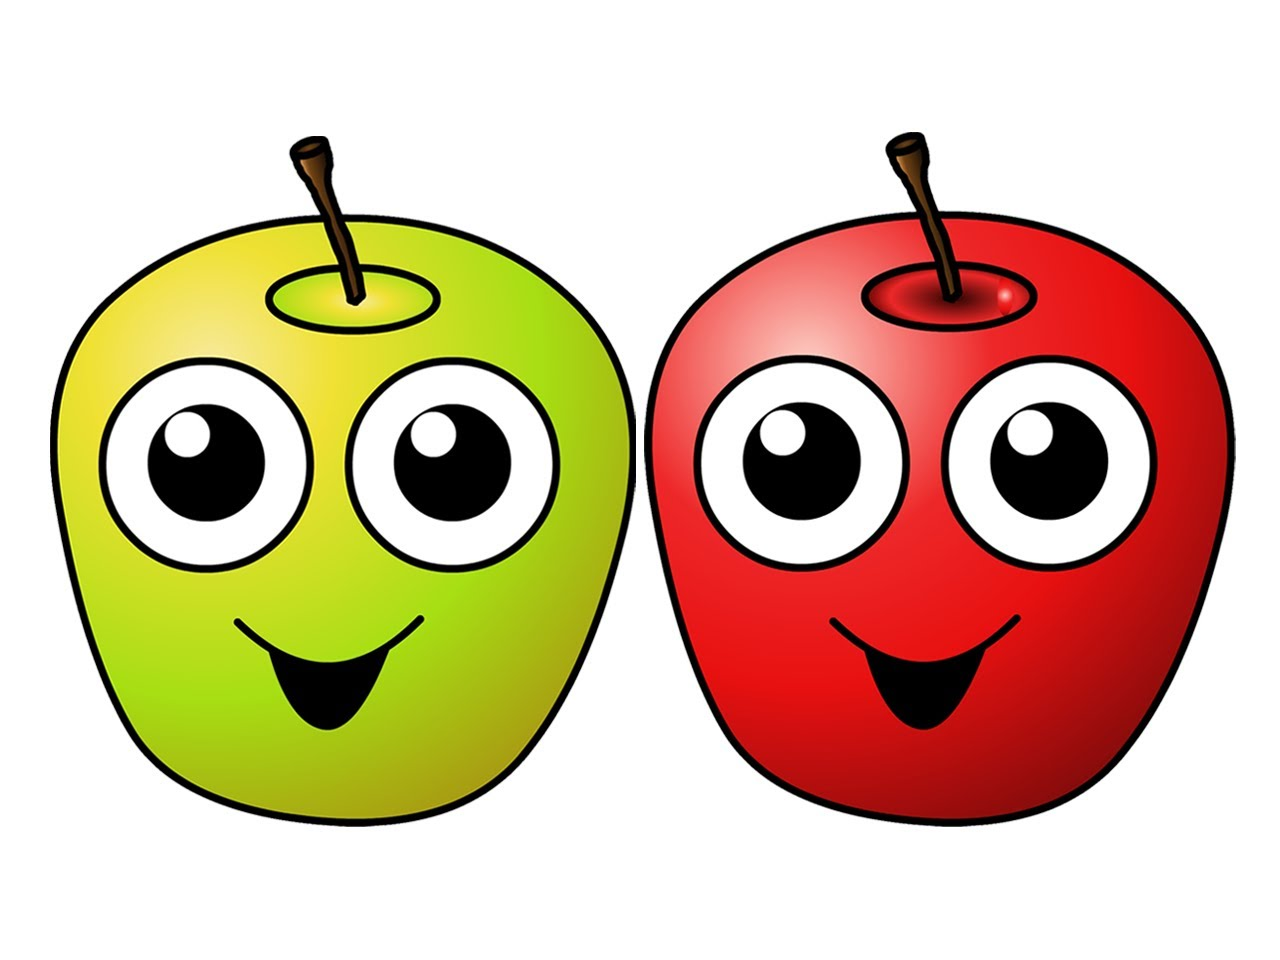 Berries clipart smiley baby. Apples are yummy learn